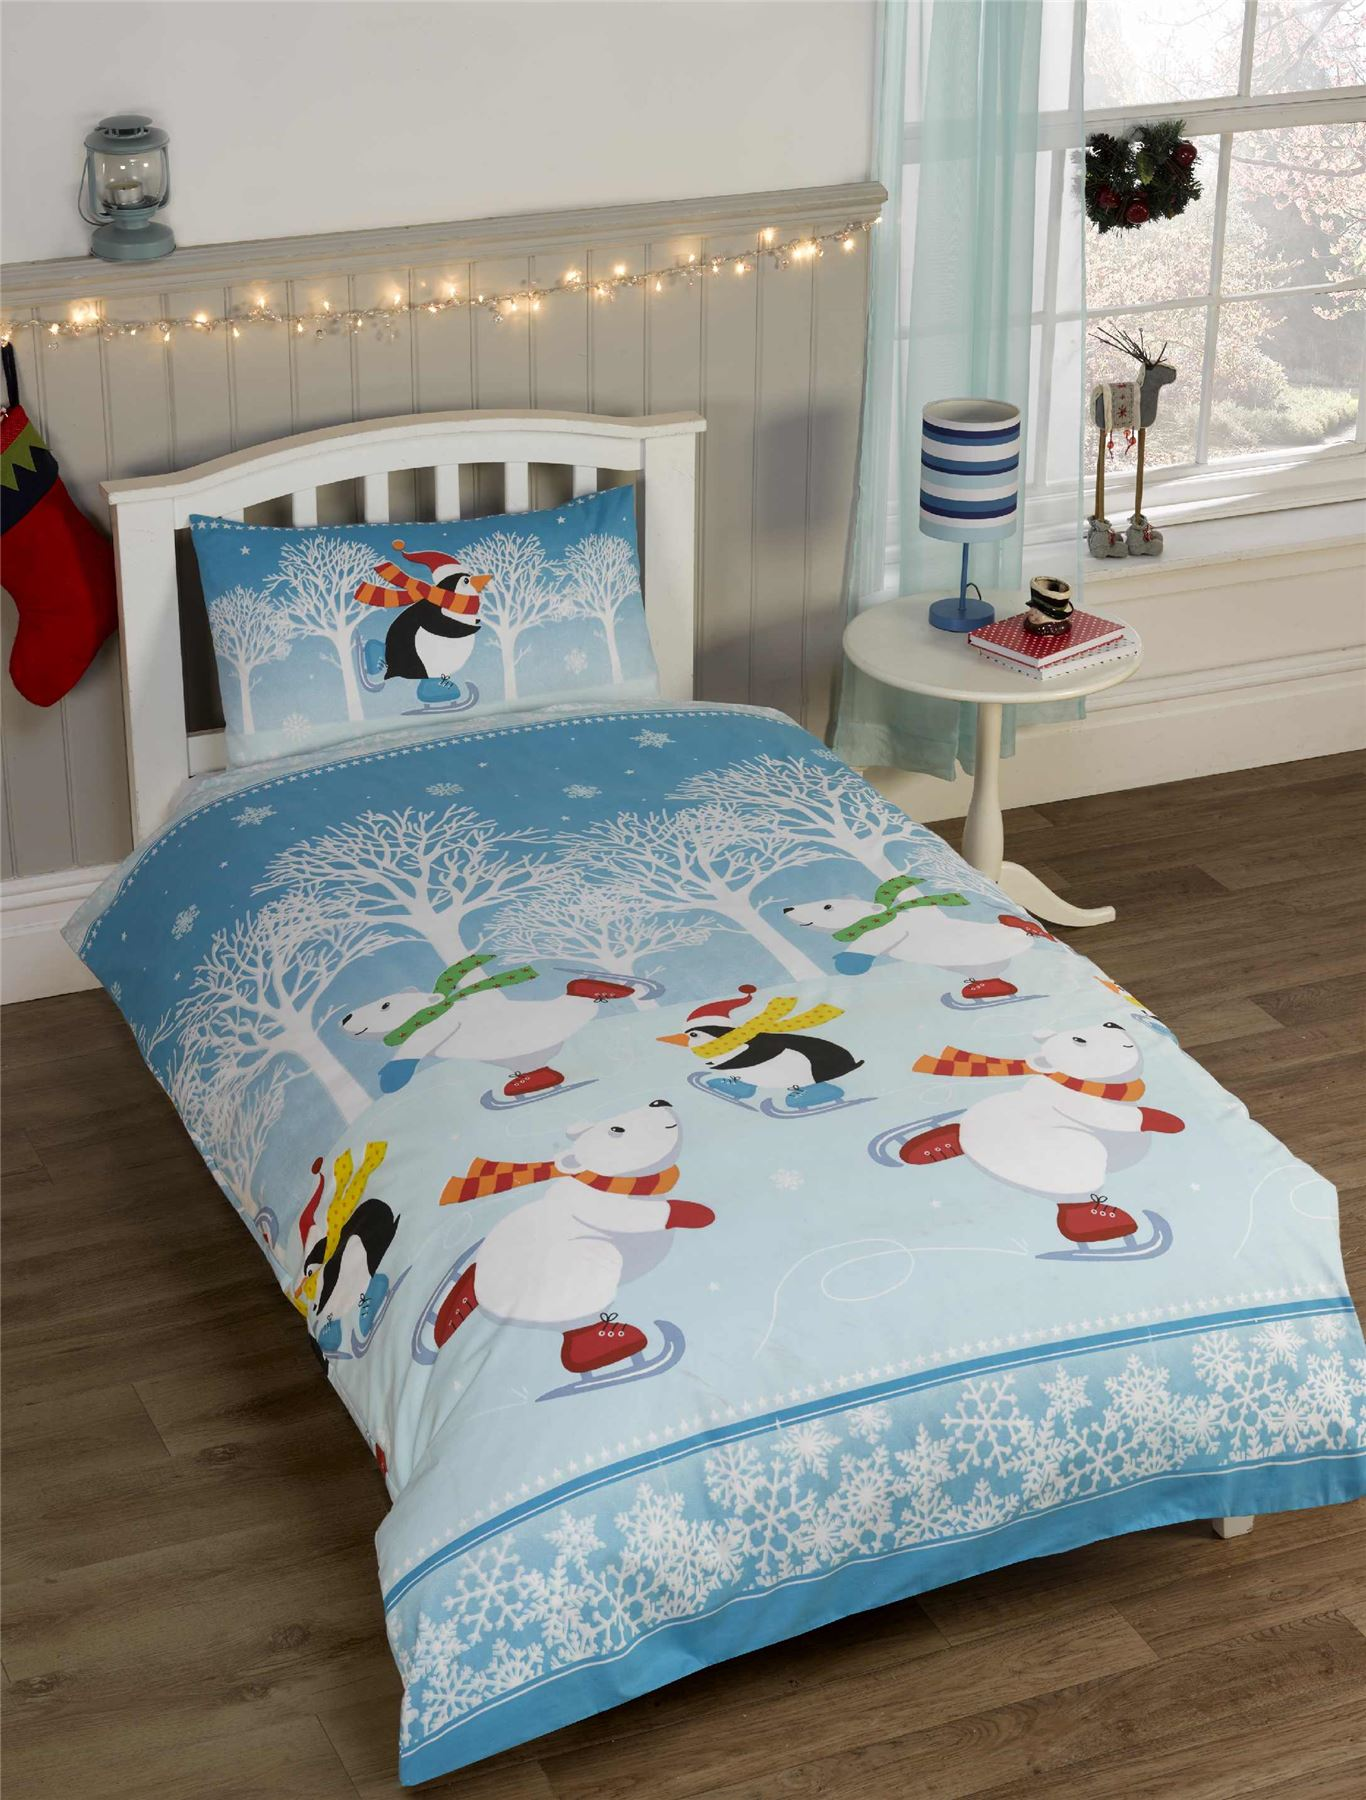 High quality Christmas inspired Duvet Covers by independent artists and designers from around the world. Some call it a duvet. Some call it a doona. Either way, it's too nice for that friend who always crashes at your place. All orders are custom made and most ship worldwide within 24 hours.